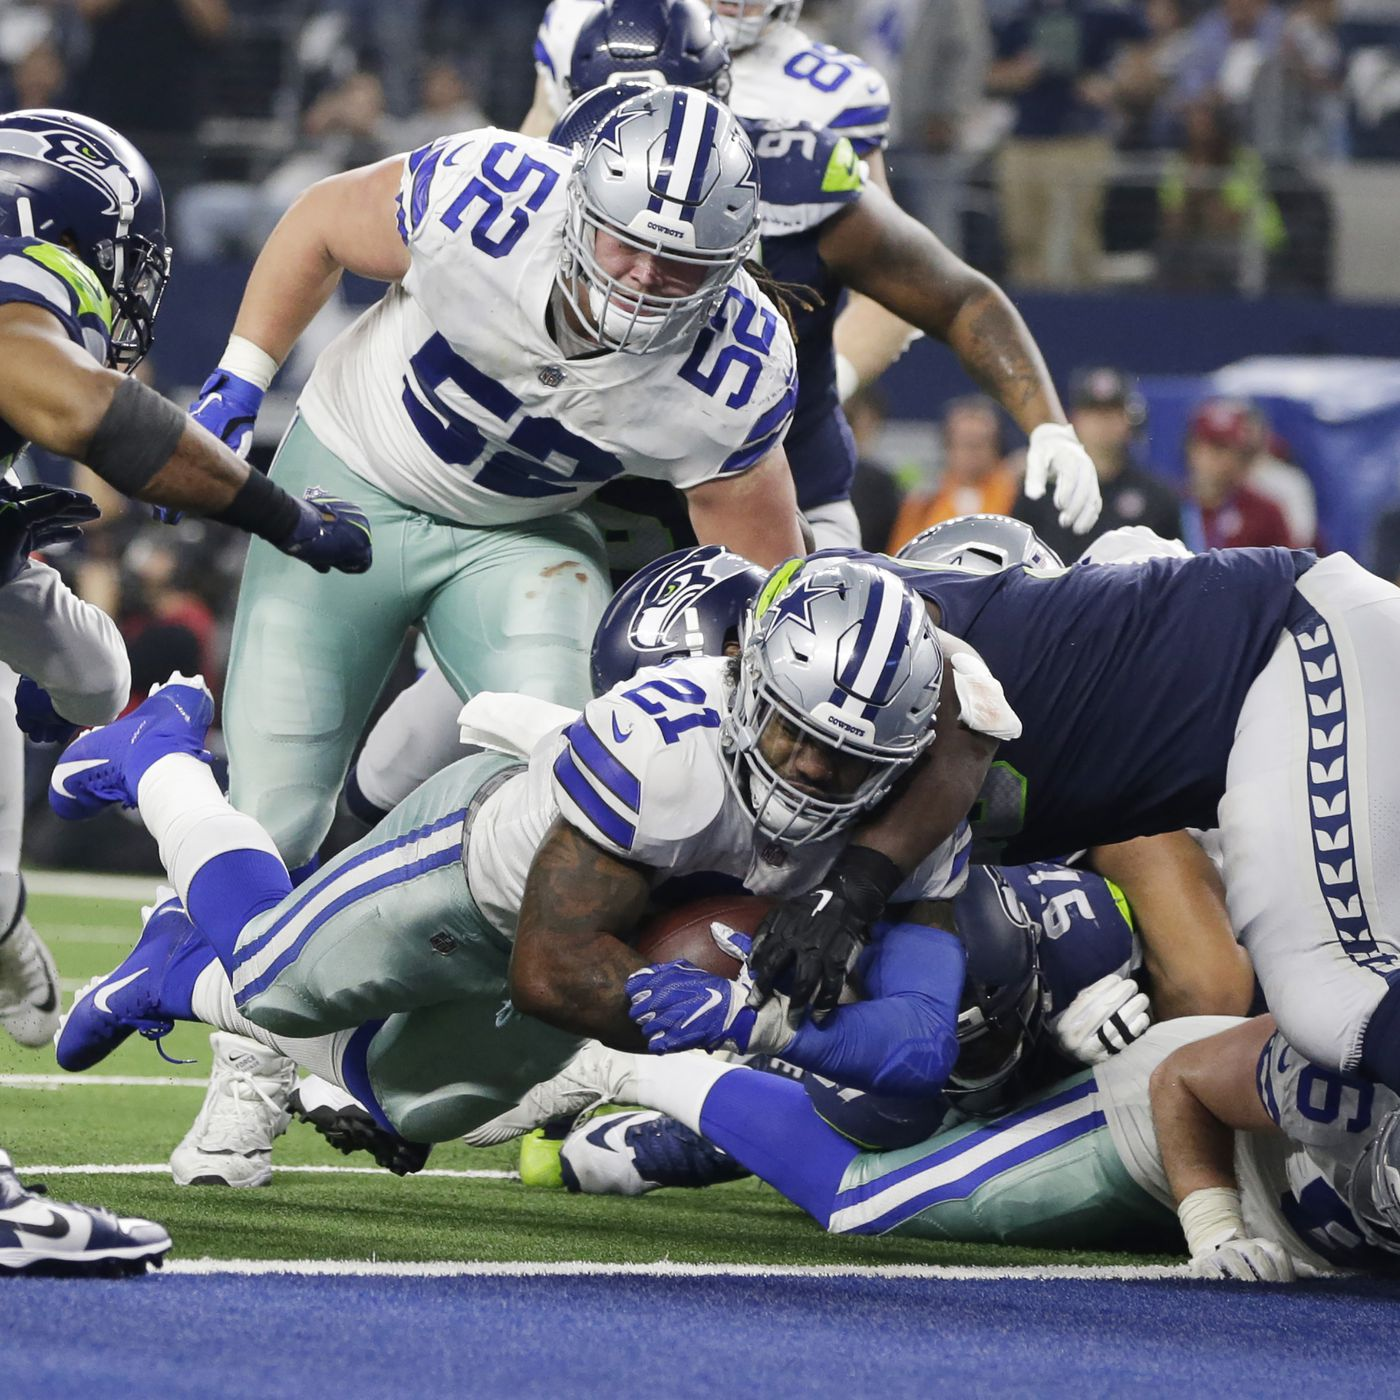 Seahawks At Cowboys 2019 Nfl Playoffs Final Score Seattle S Season Ends With 24 22 Loss To Dallas Field Gulls